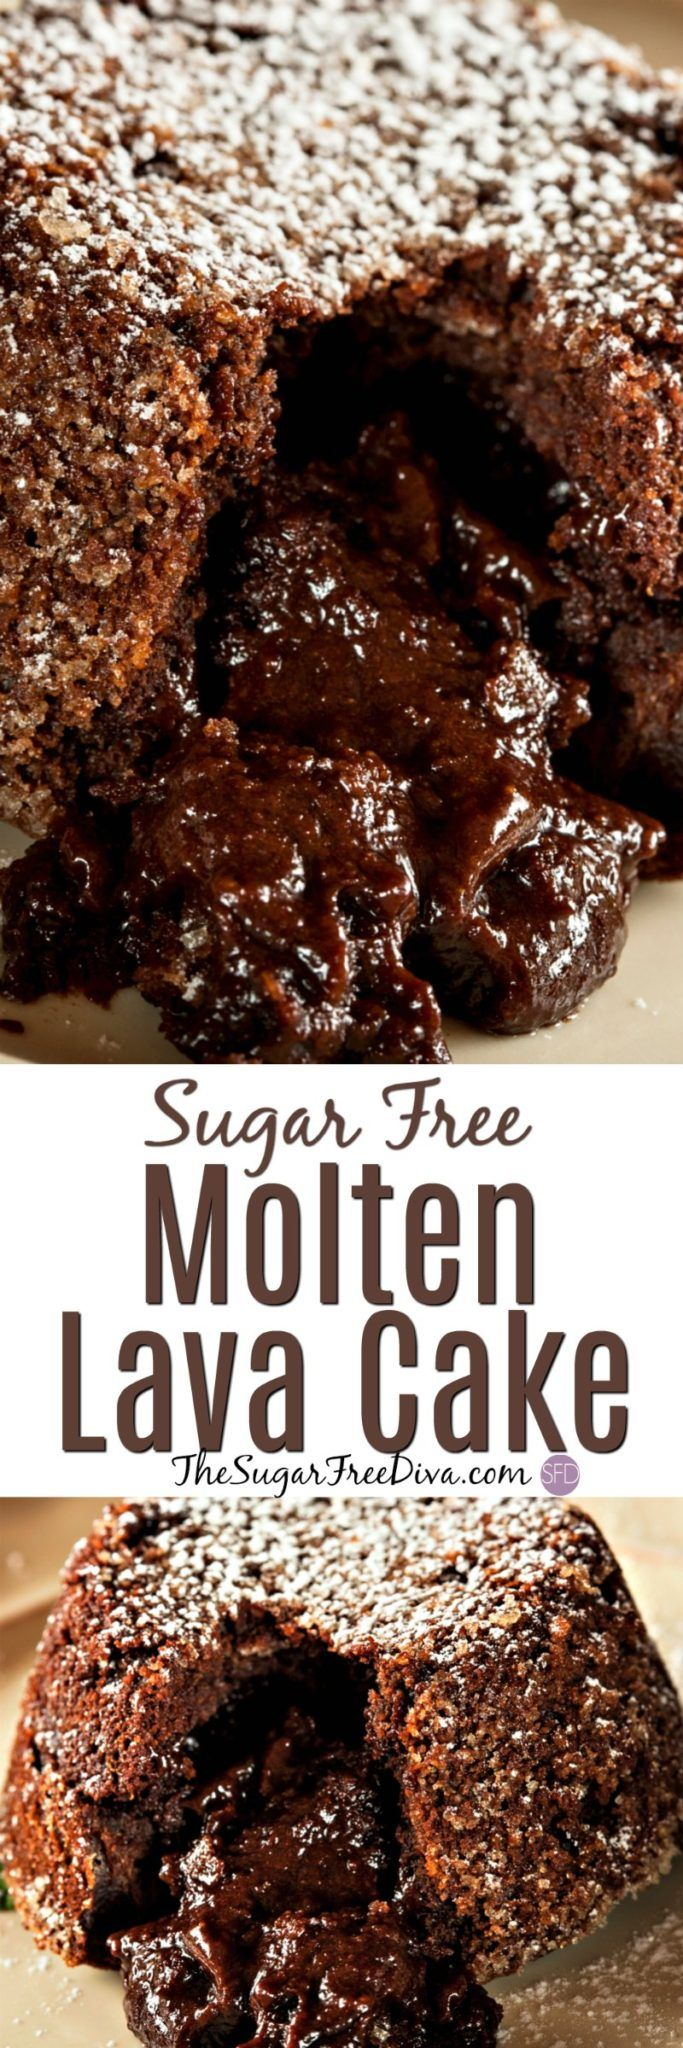 "Sugar Free Molten Lava Cake--It's like discovering the golden ticket is how I would describe Sugar Free Molten Lava Cake  I would also say that there certainly a reason why they call this a ""Molten Lava Cake"".  Sugar Free Molten Lava Cake I could easily agree with anyone who states that any Molten Lava..."